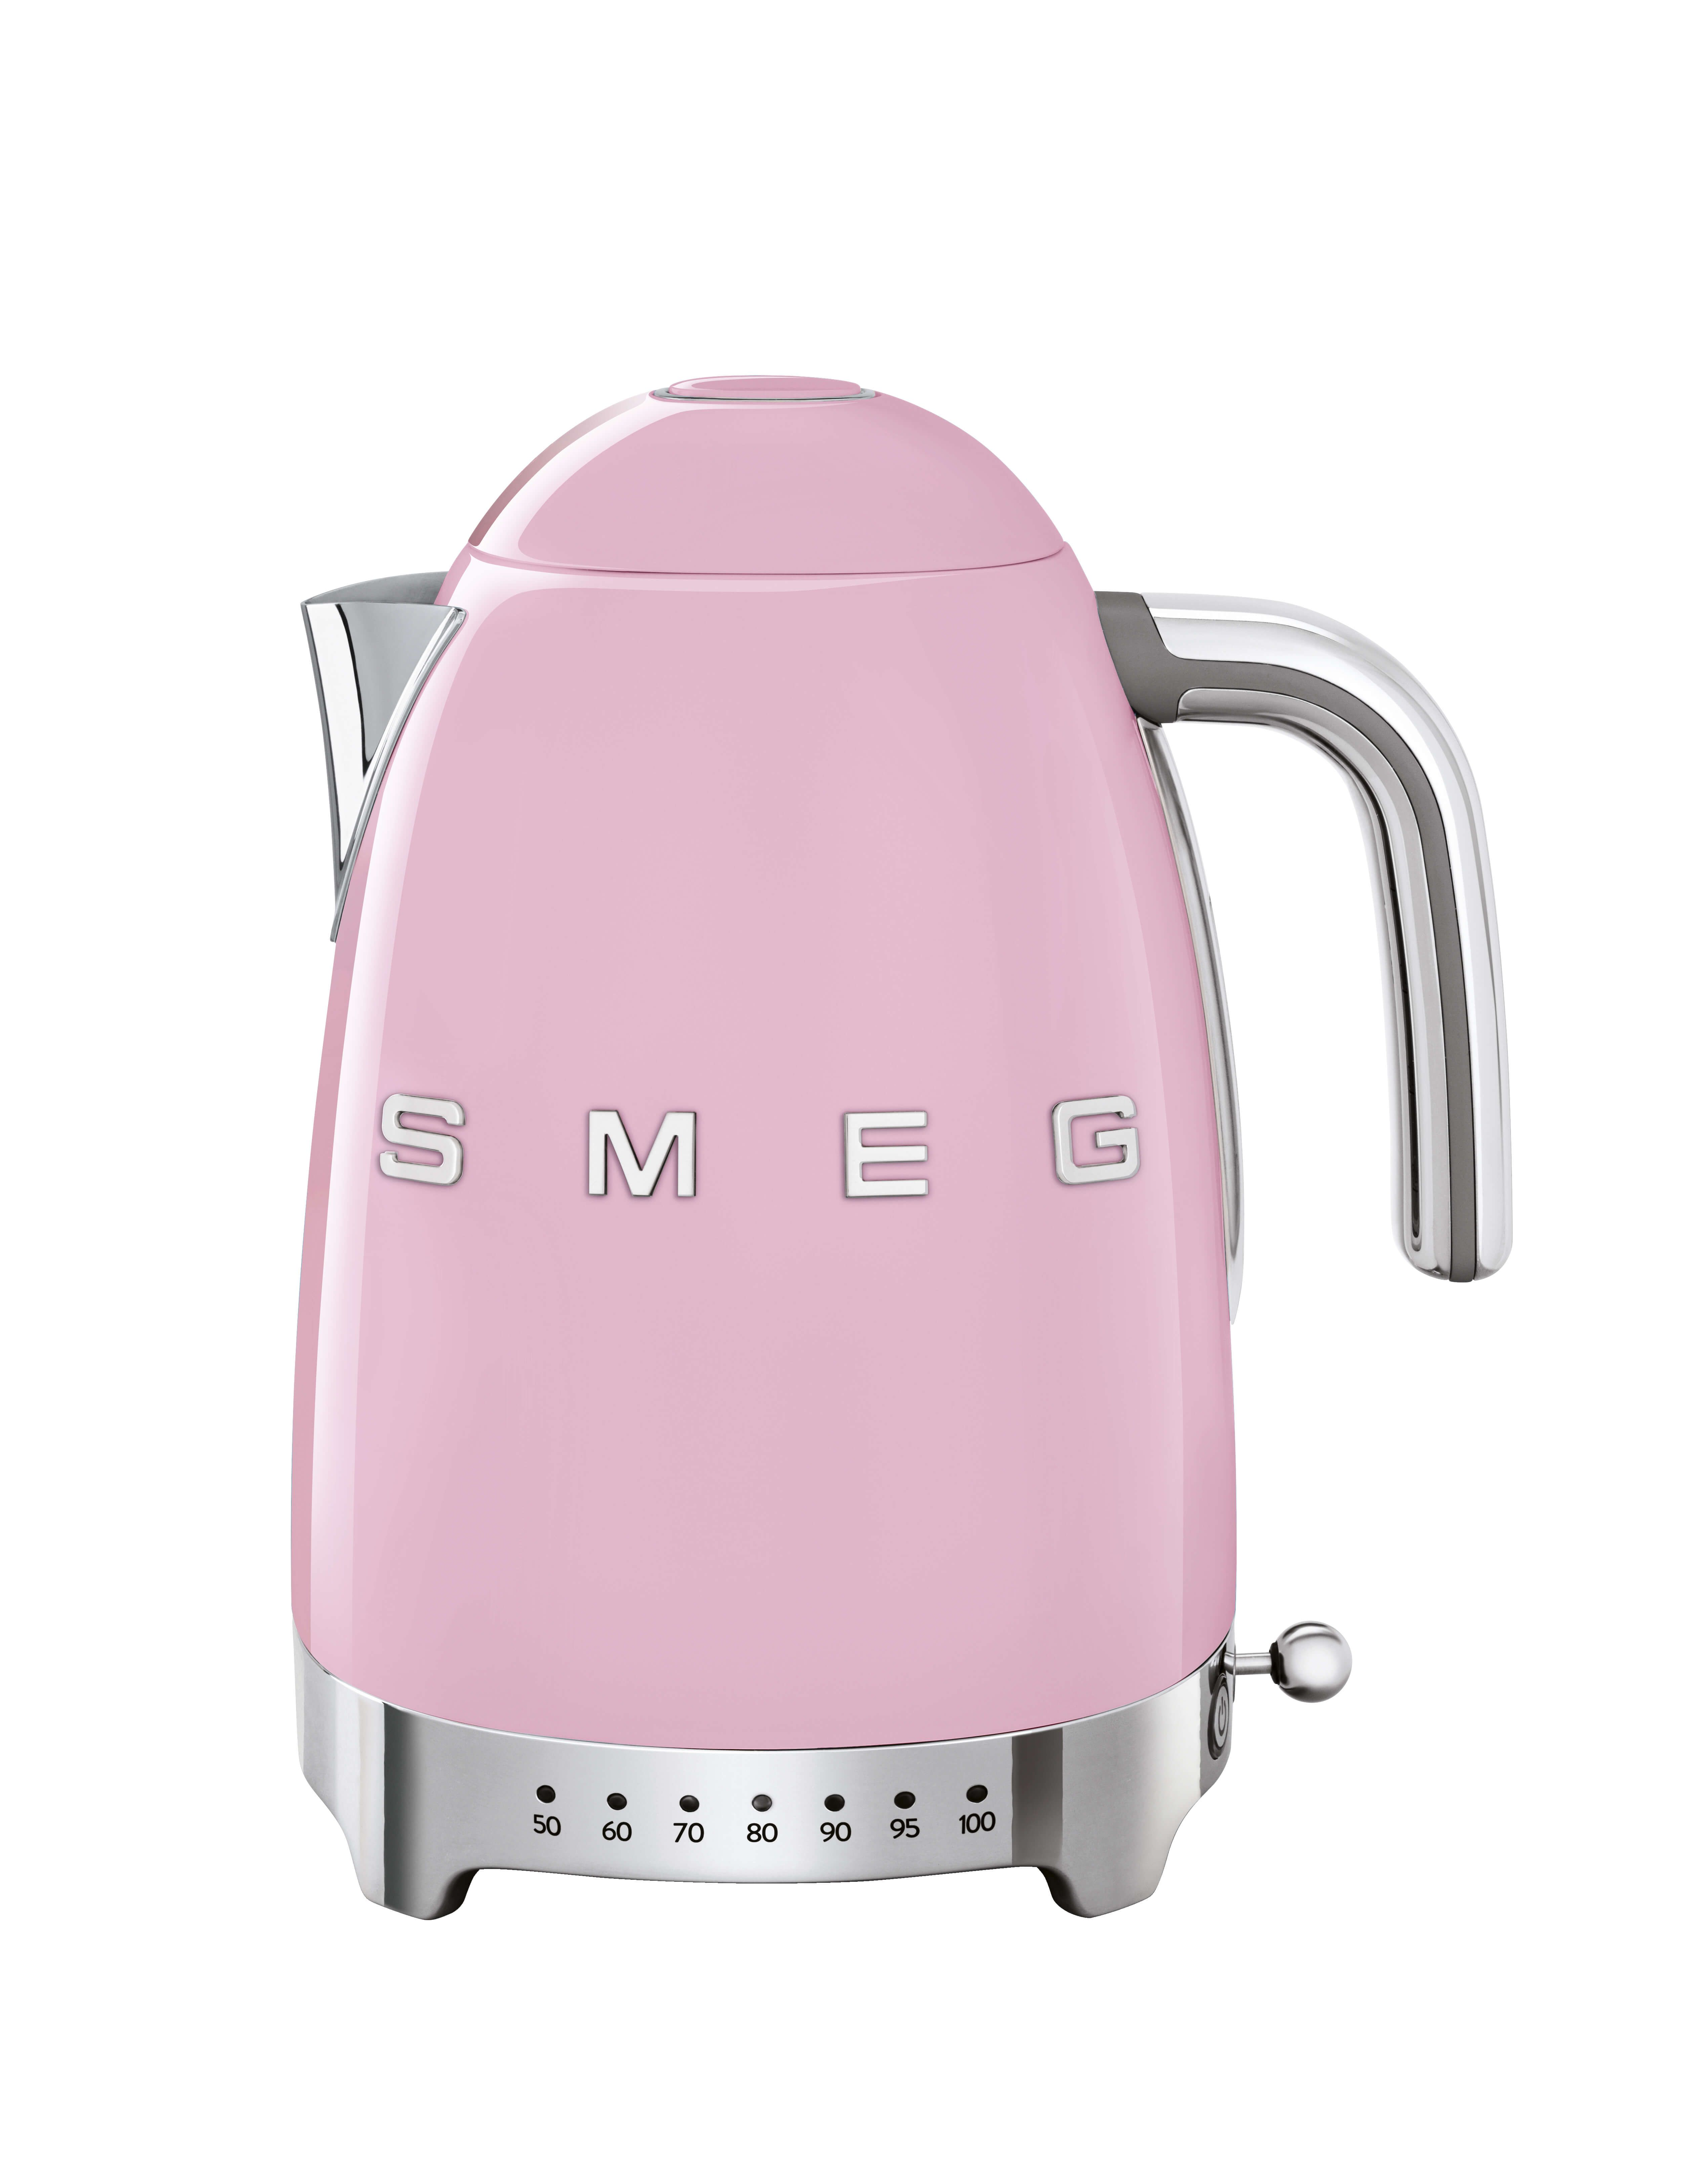 SMEG Variable Temperature Kettle 1.7L Pink - KLF04PKUK